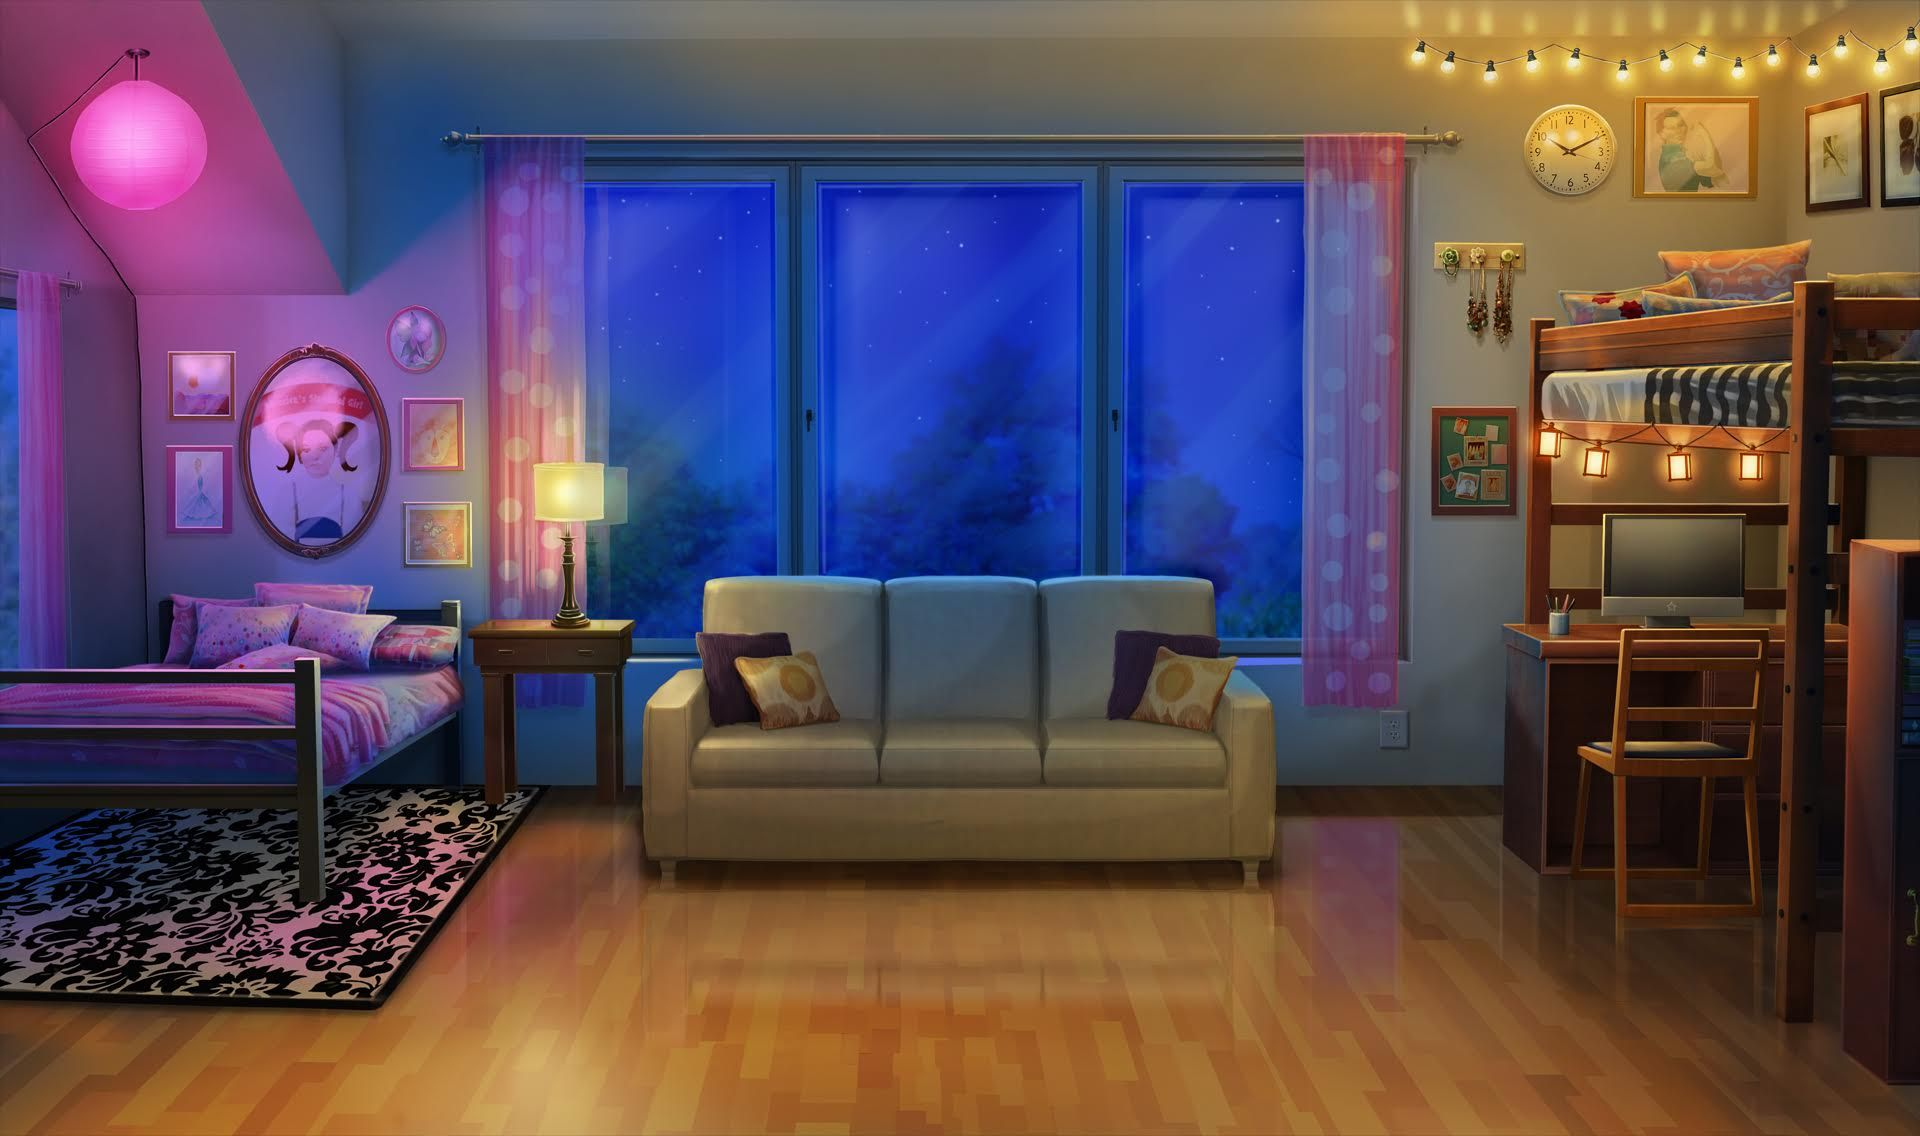 Int Bristols Dorm Room Night Episode Episode Backgrounds